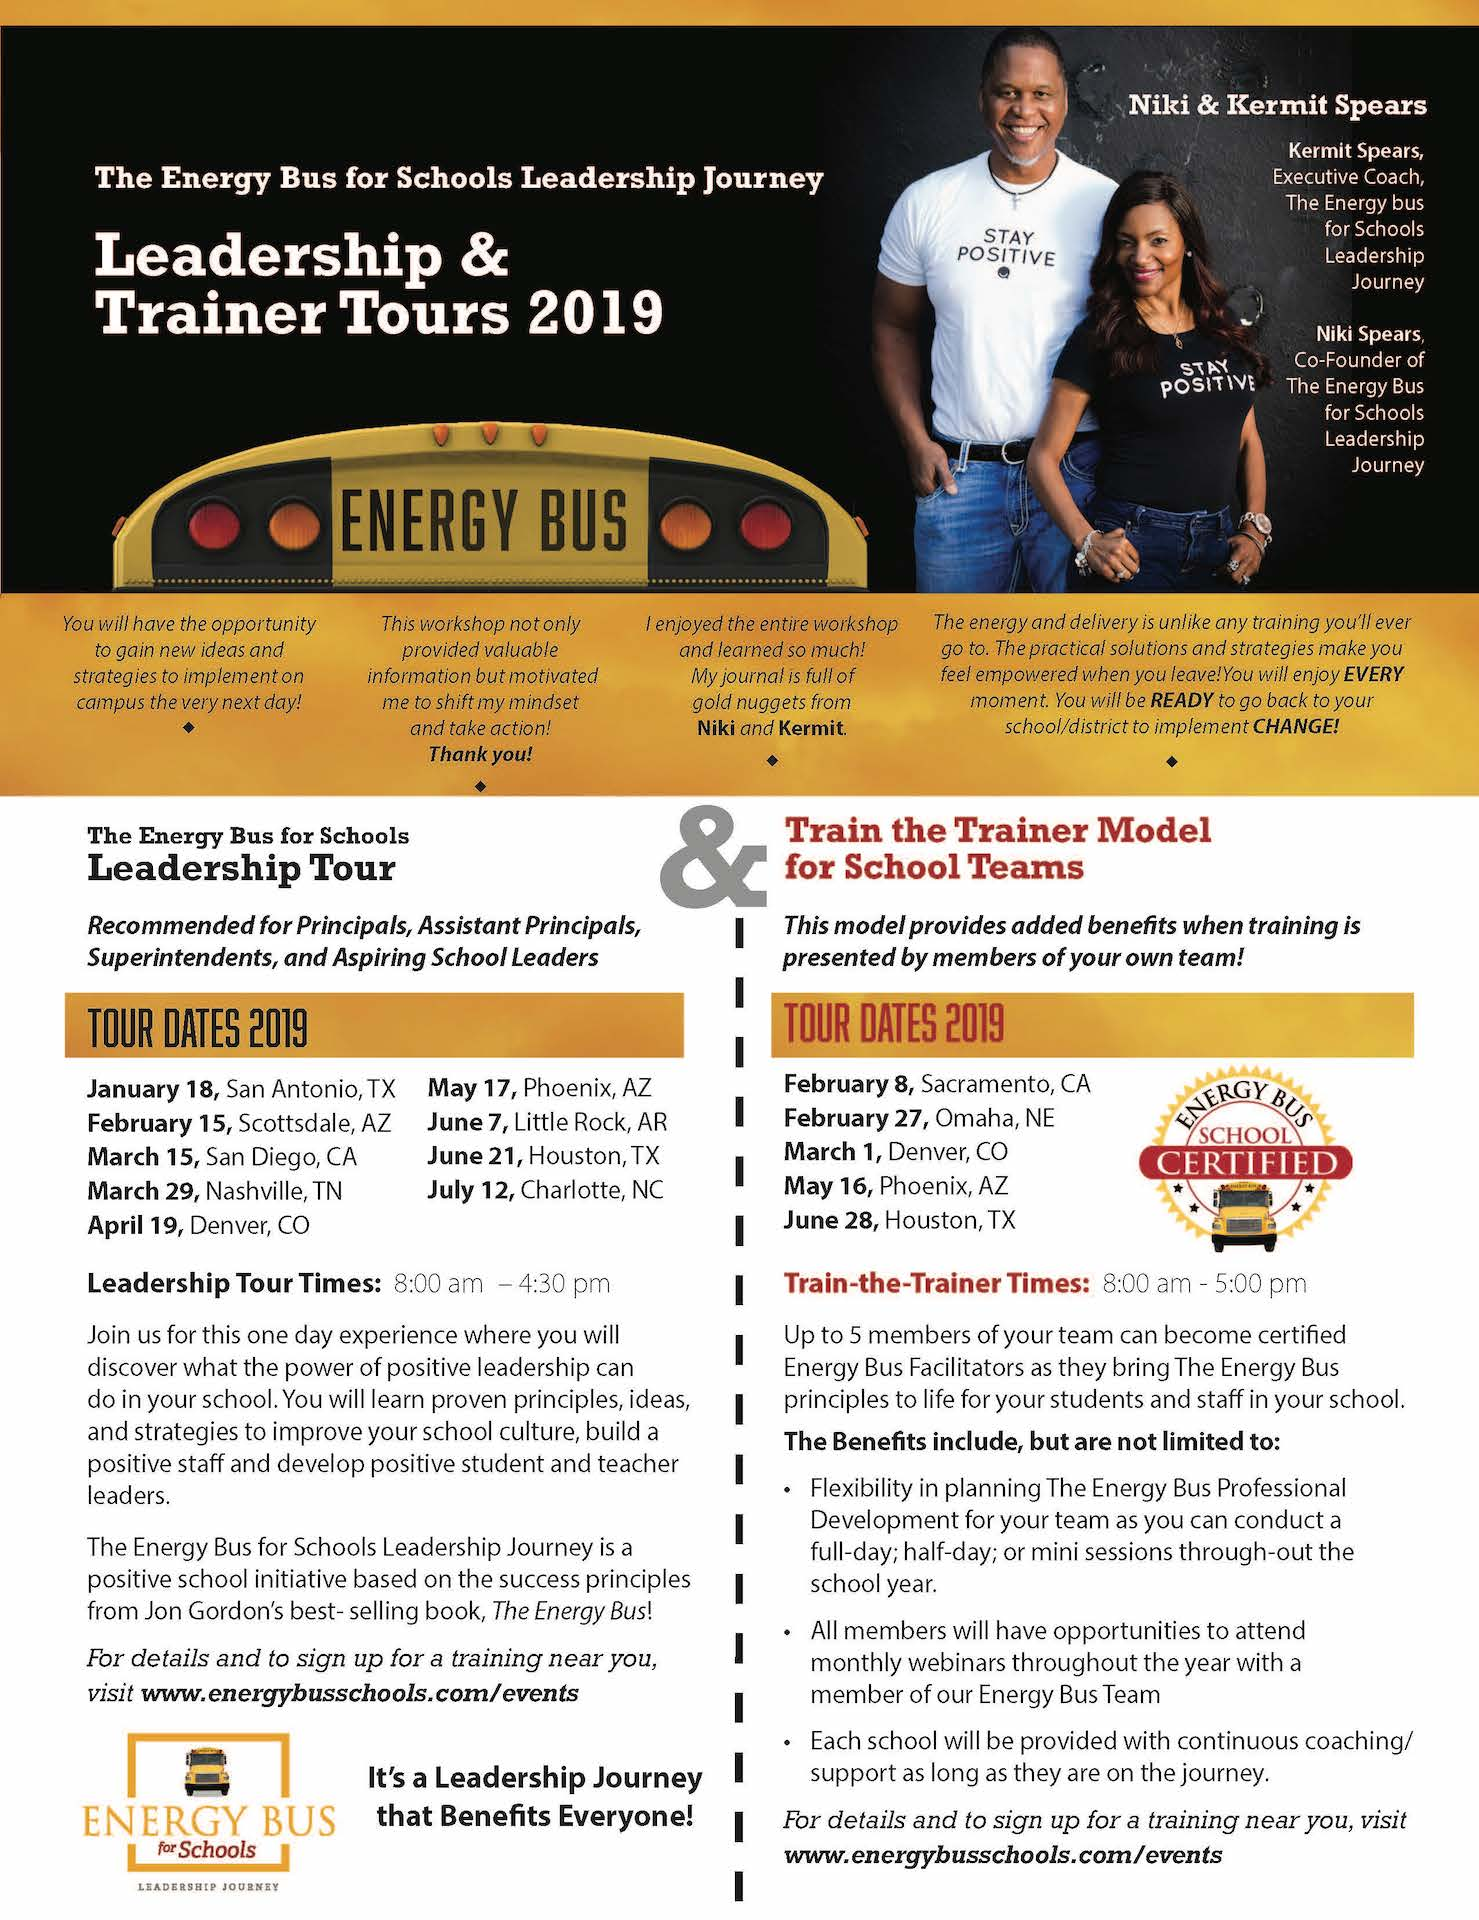 Energy Bus for Schools Leadership Journey